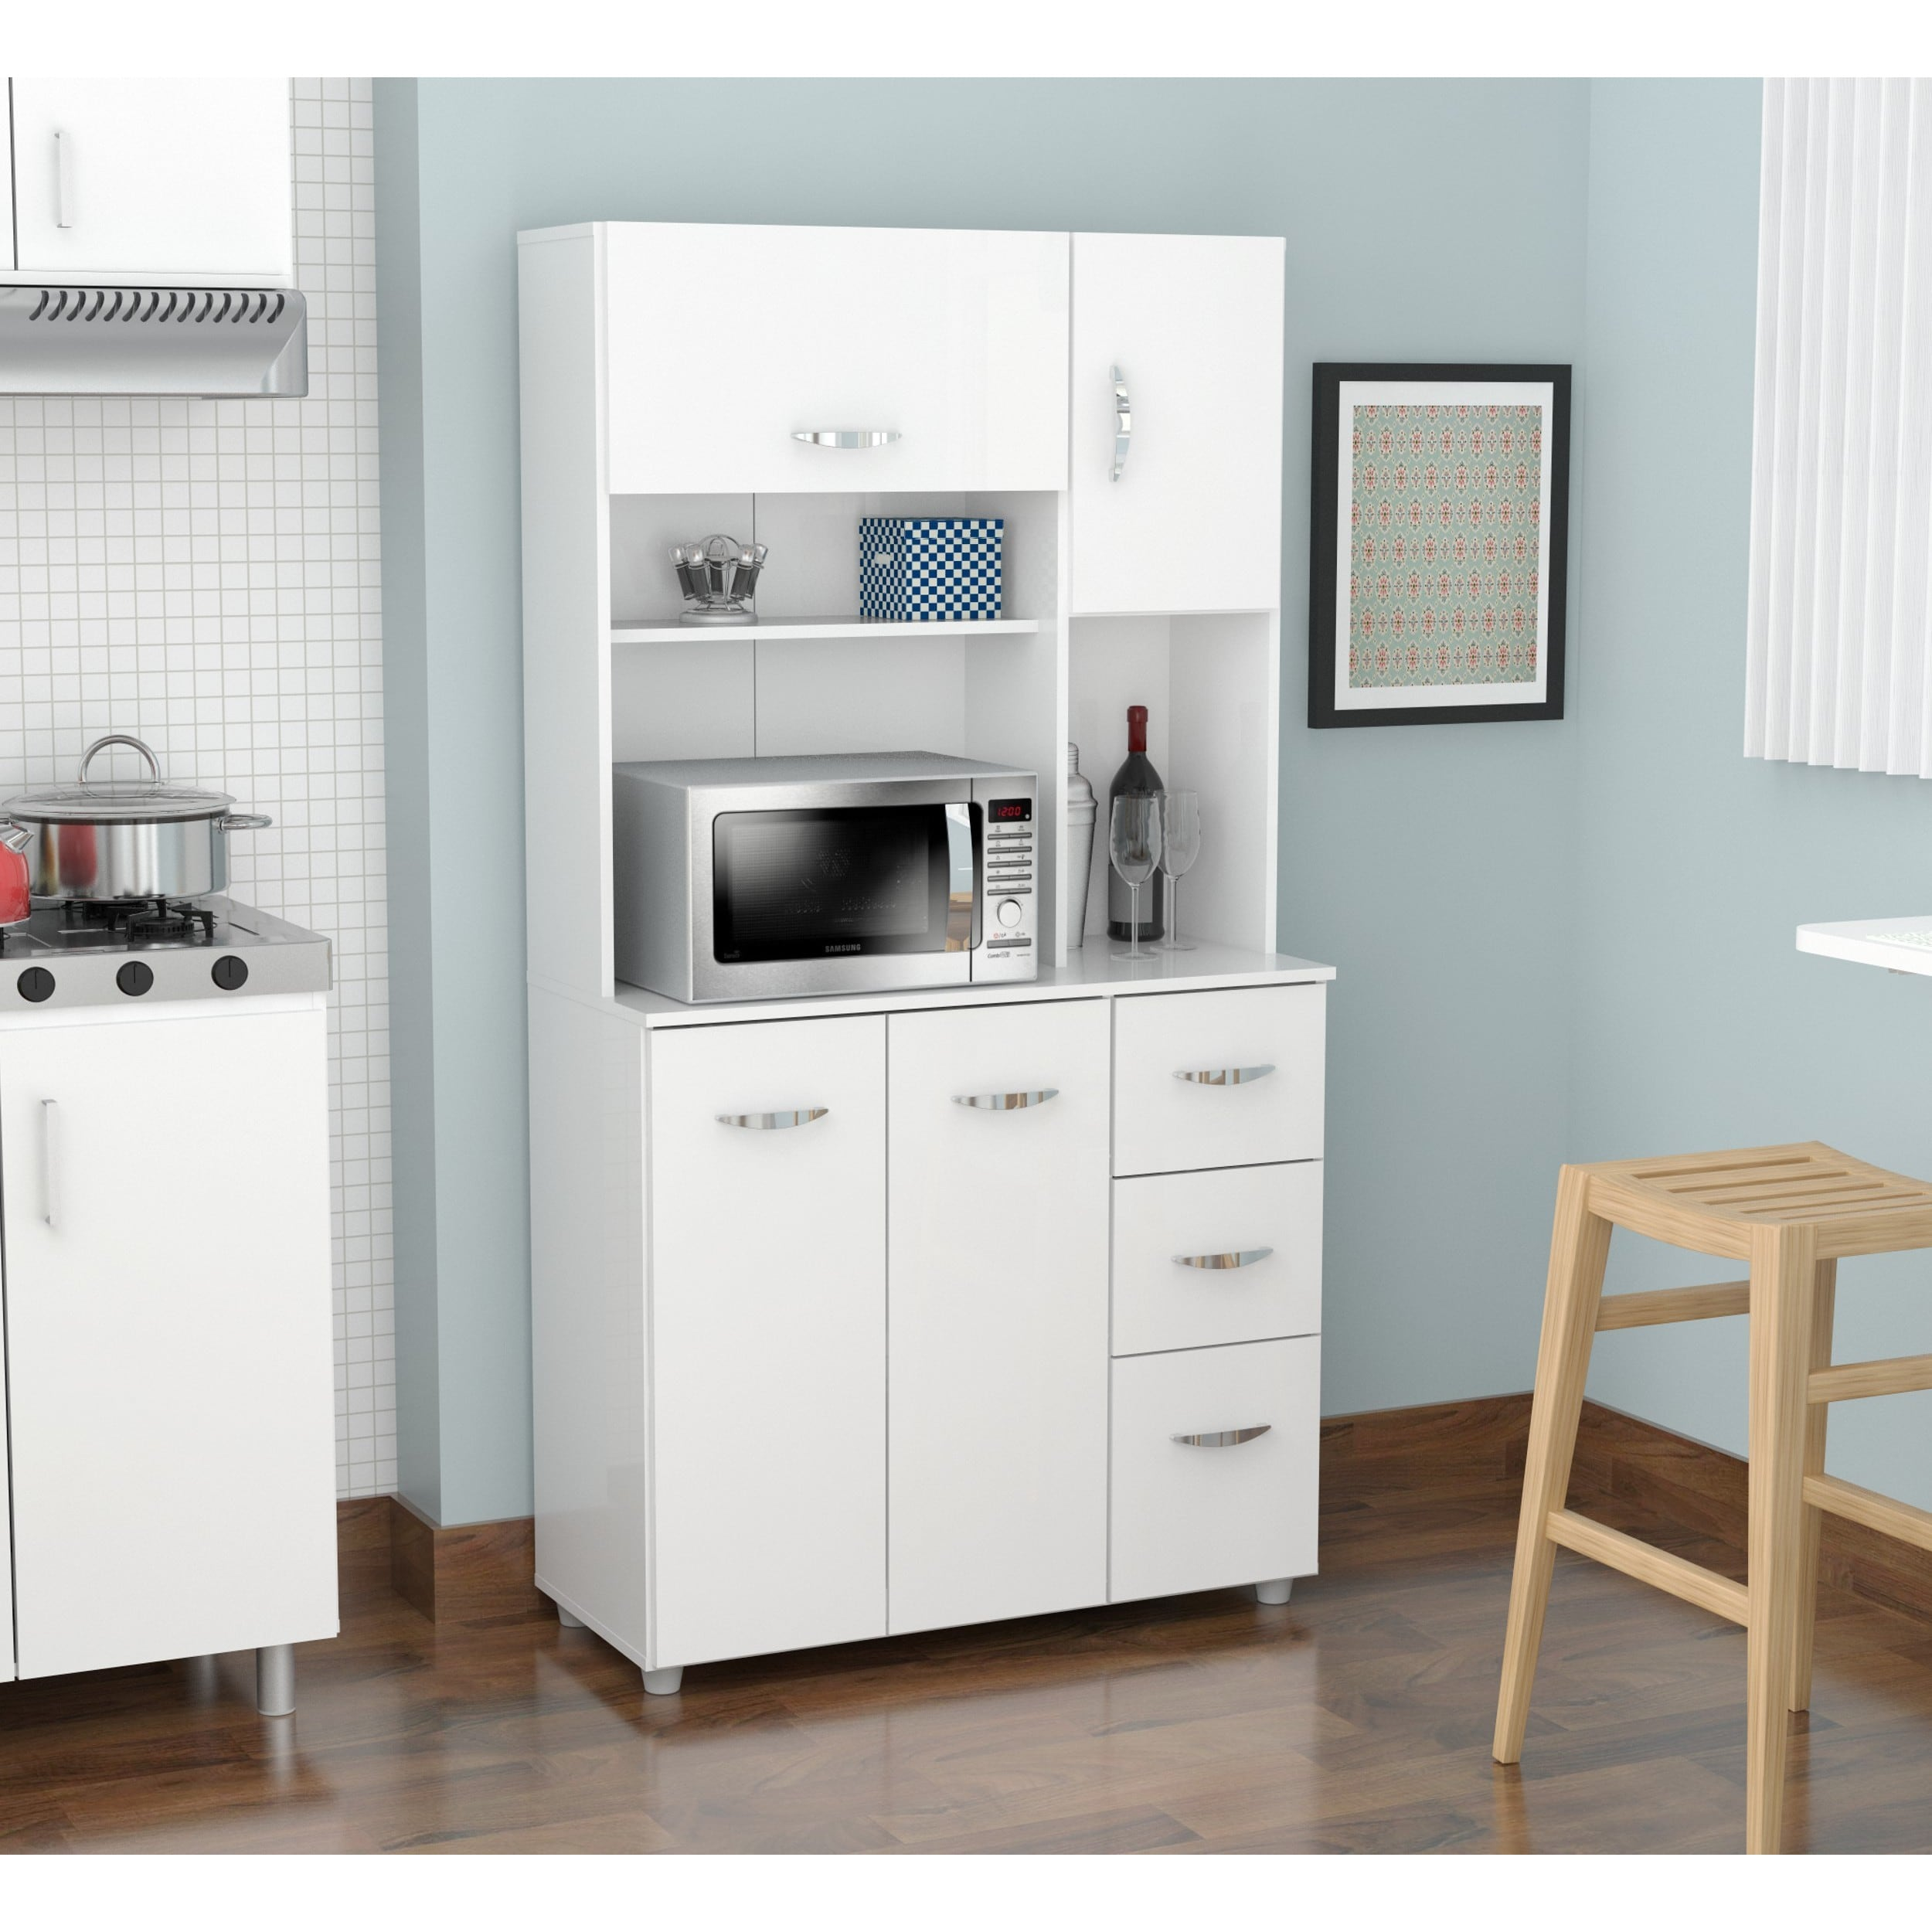 Shop White Kitchen Storage Cabinet On Sale Overstock 9988425